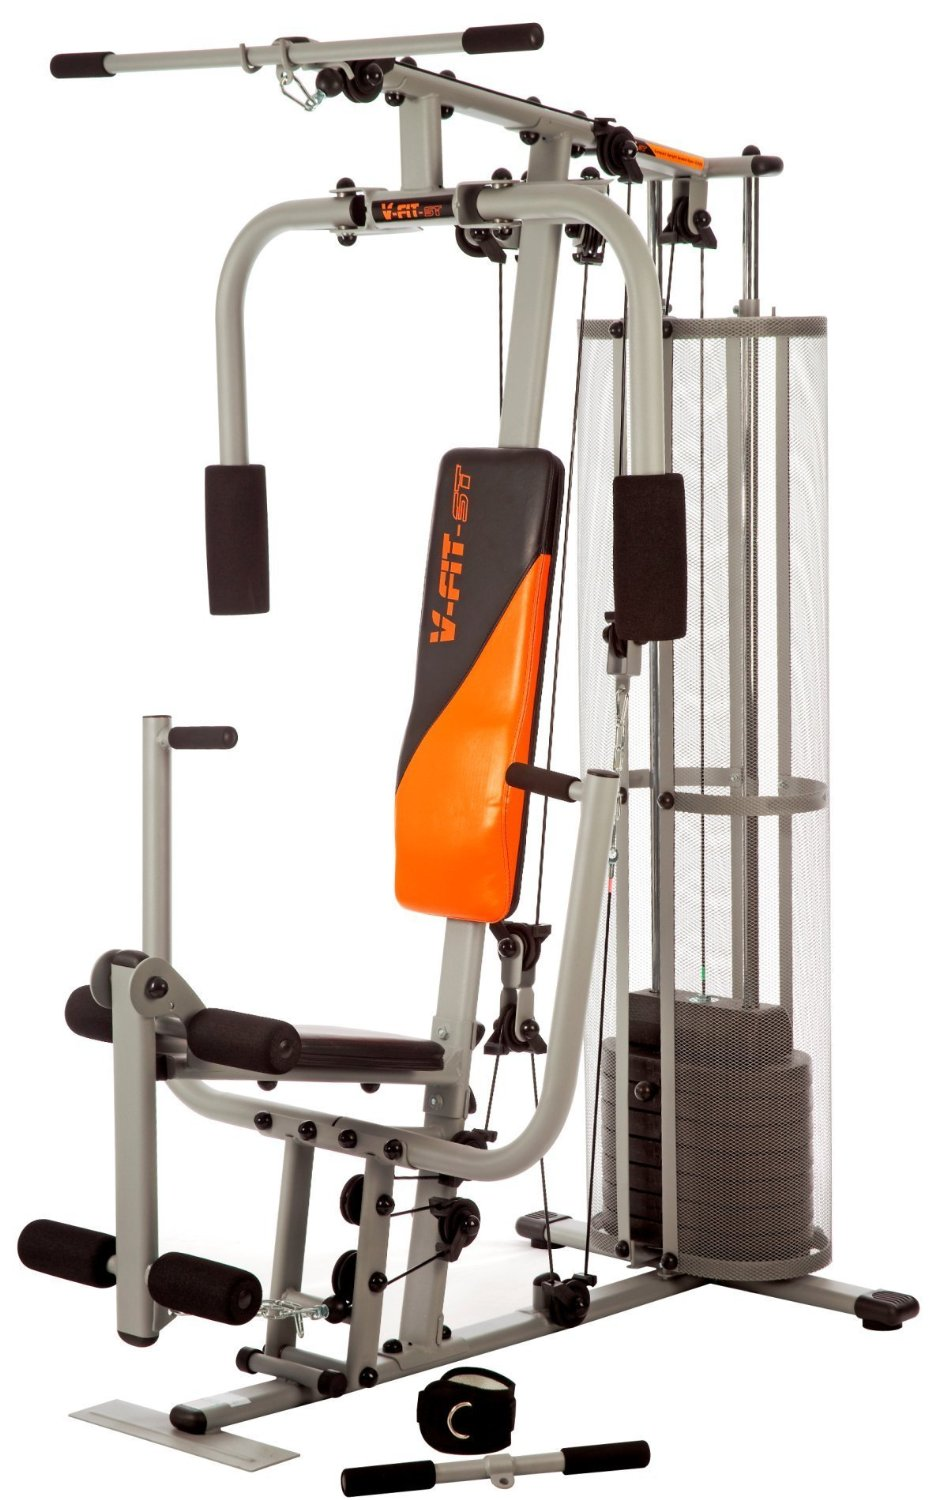 V fit cug herculean compact upright gym review